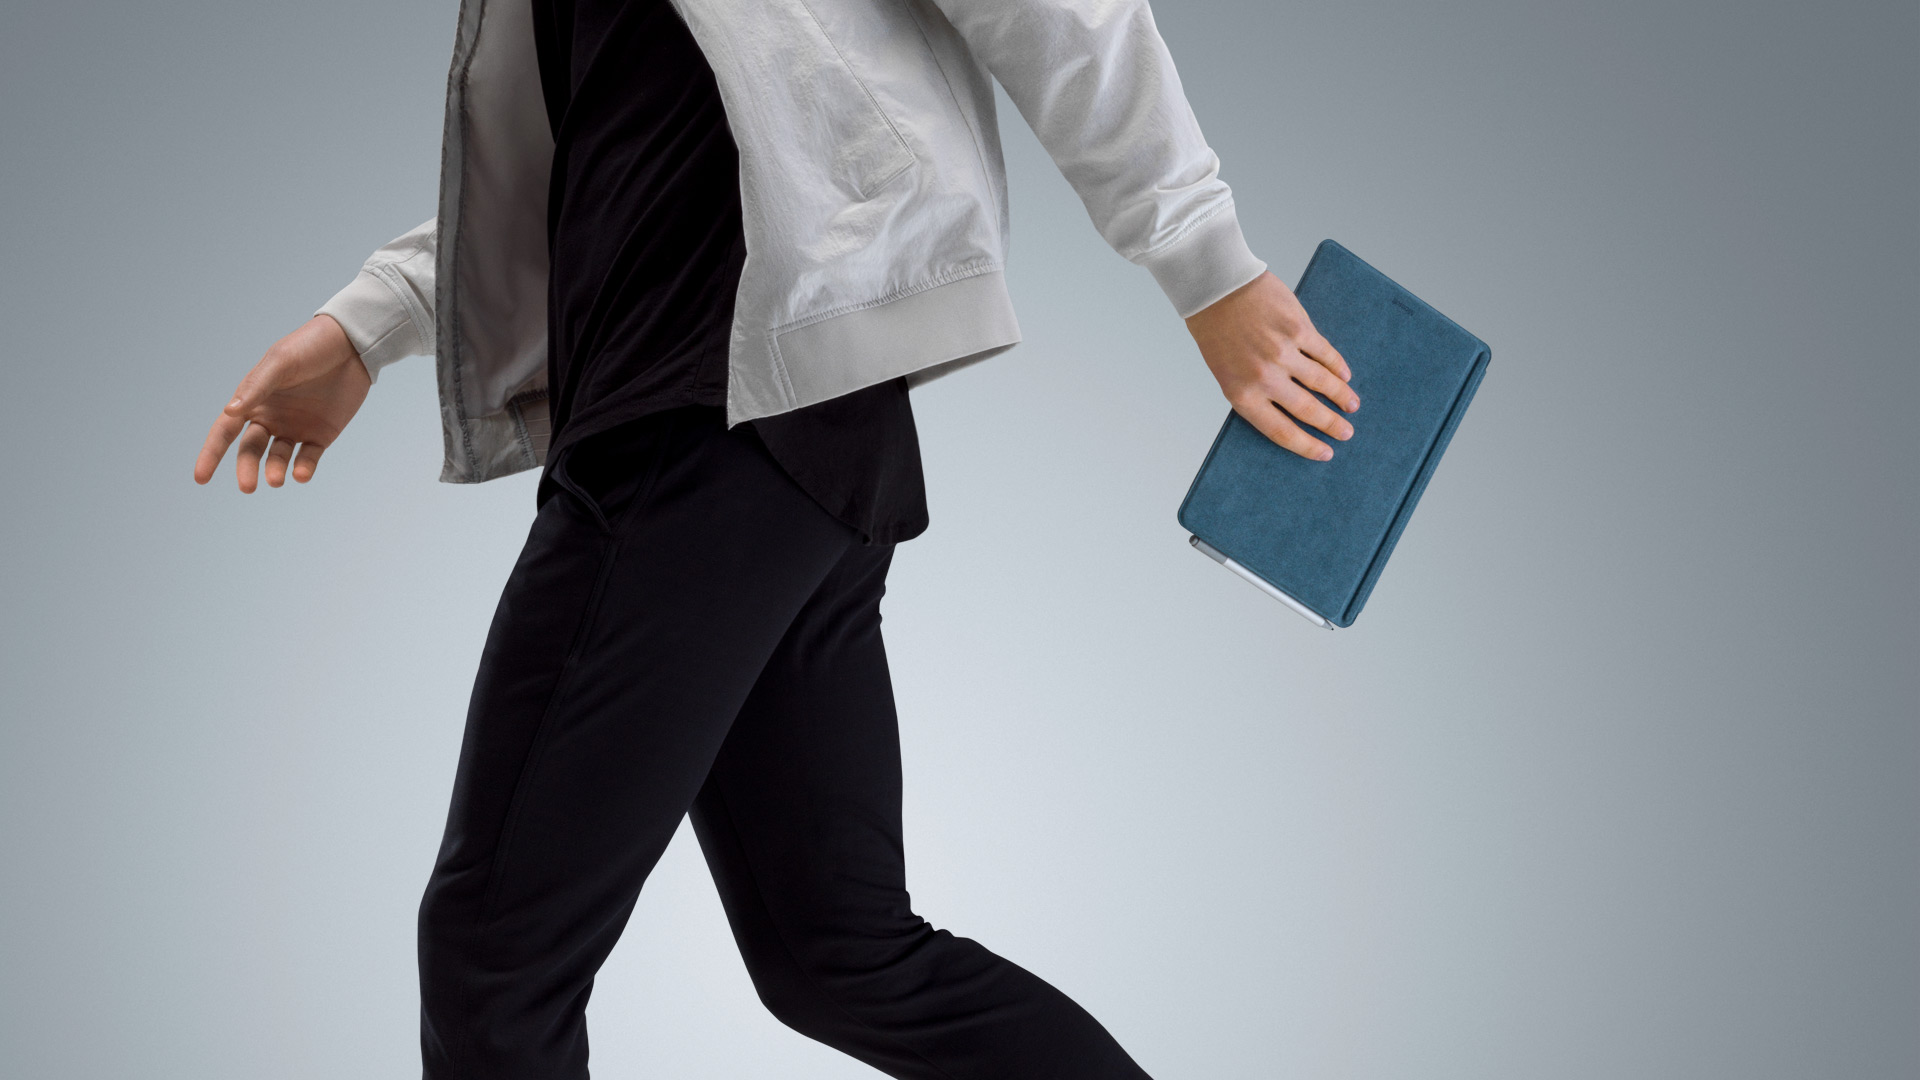 A man walks carrying Surface Go with a blue Surface Go Signature Type Cover